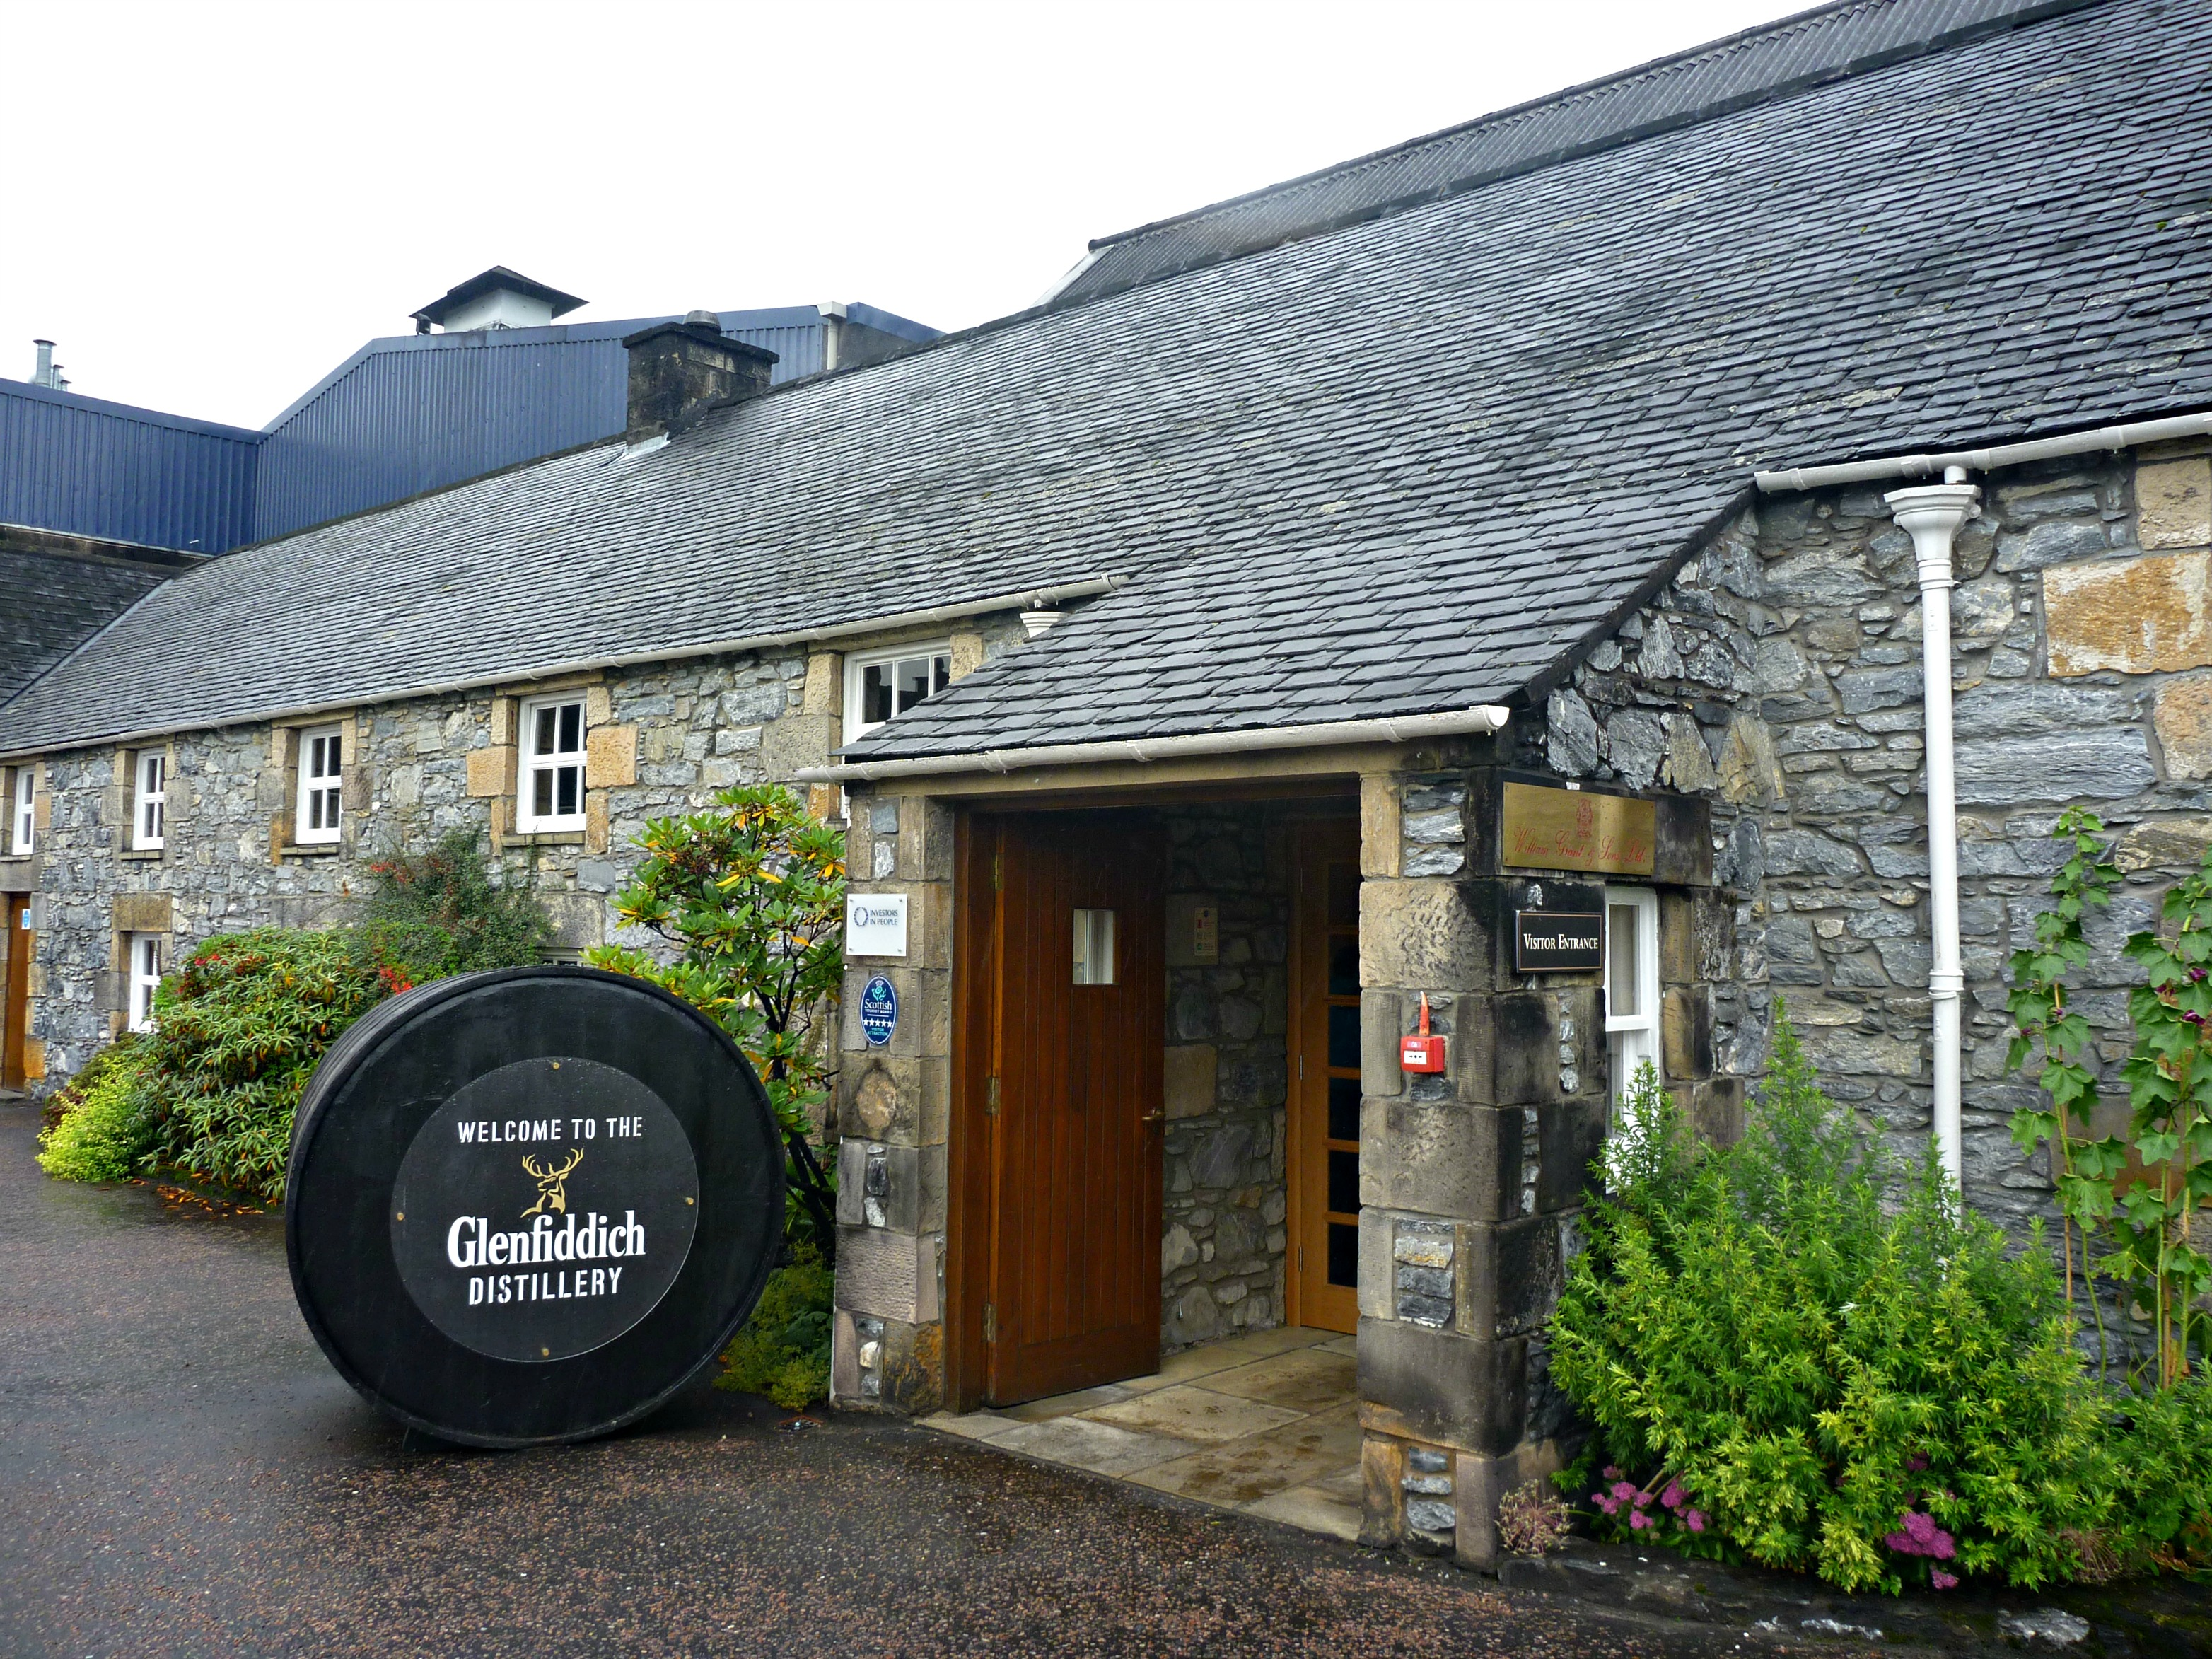 Scotland distillery. Glenfiddich